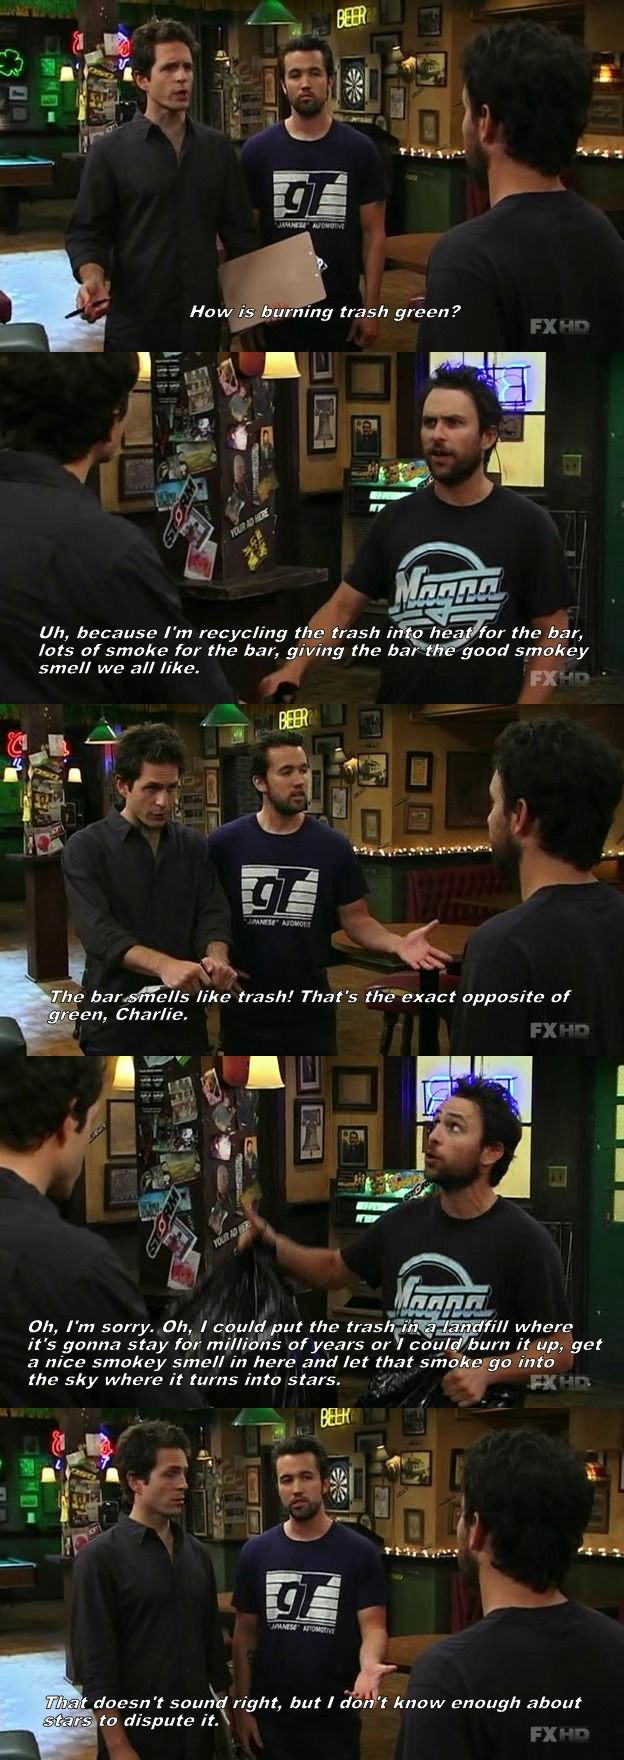 """That doesnt sound right, but I dont know enough about stars to dispute it..."" lol, It's Always Sunny"